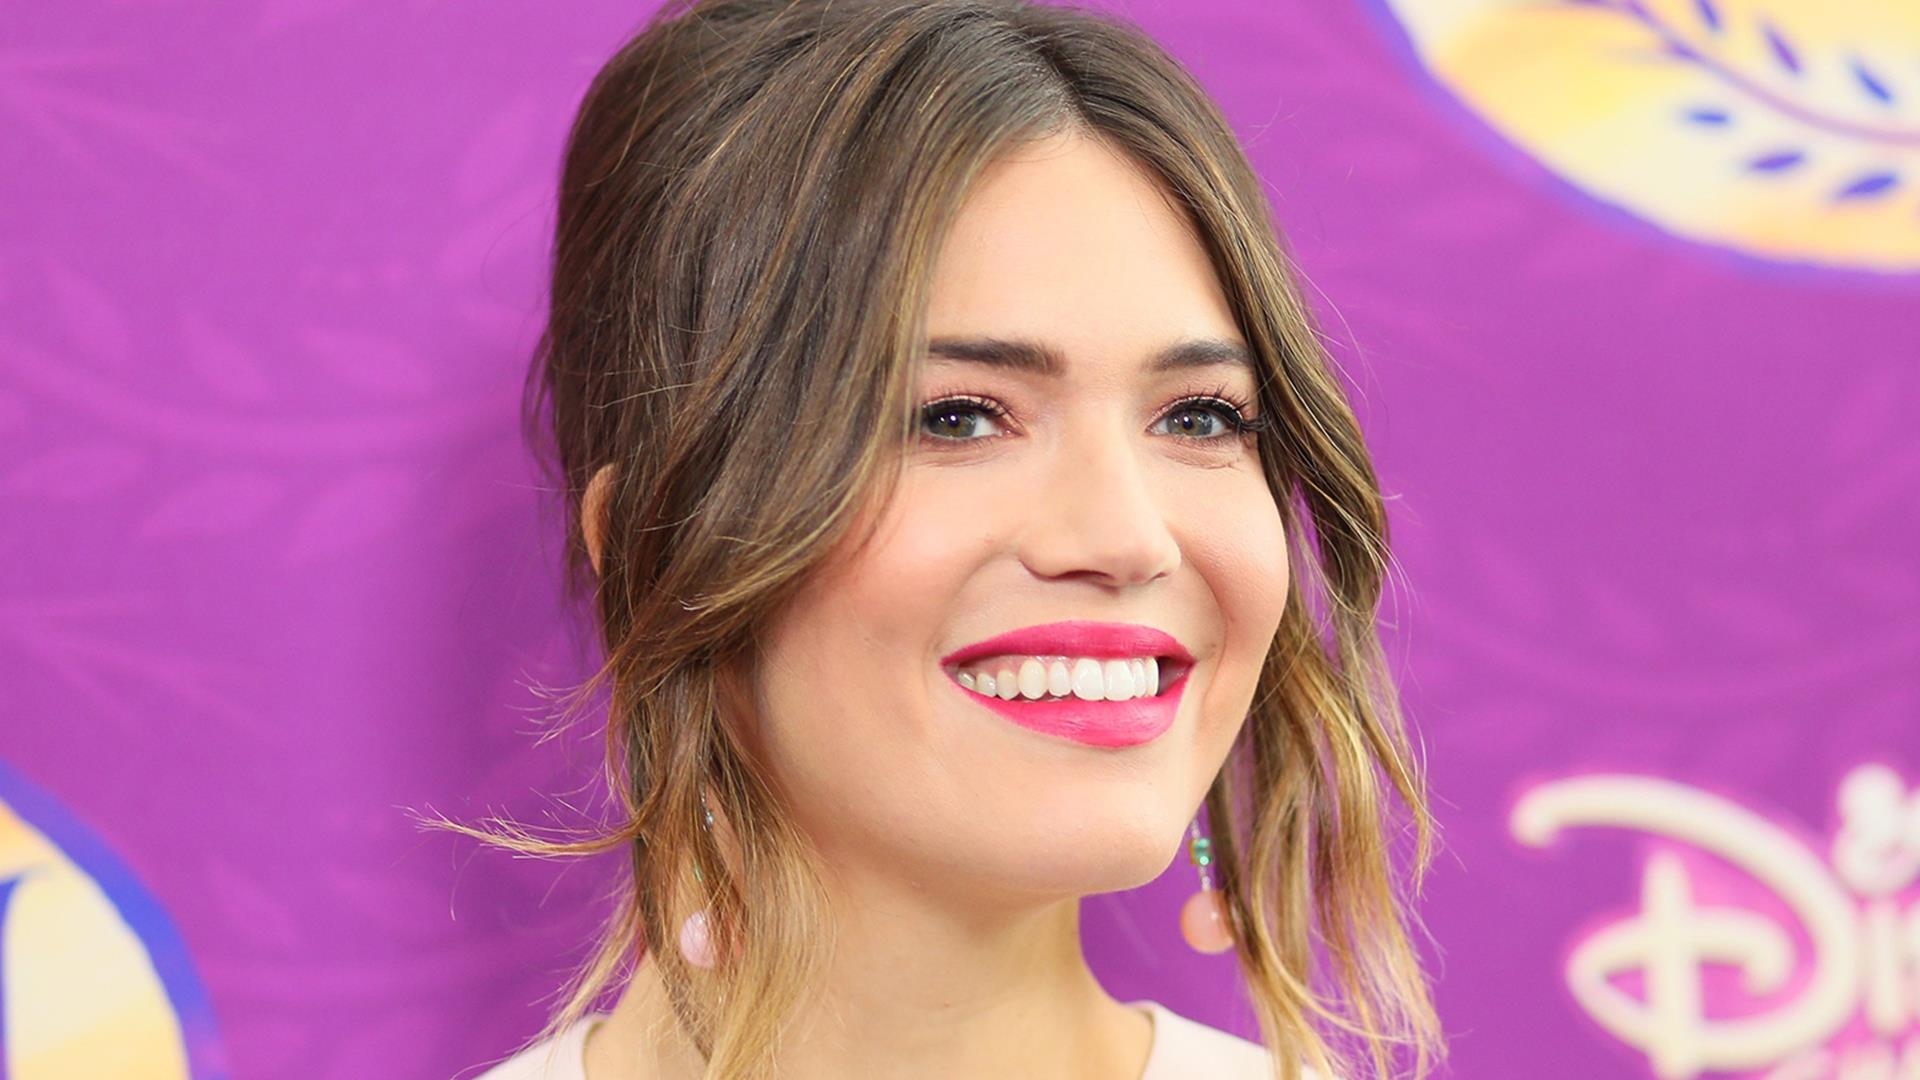 mandy moore shares the secrets to her upbeat attitude, gives advice